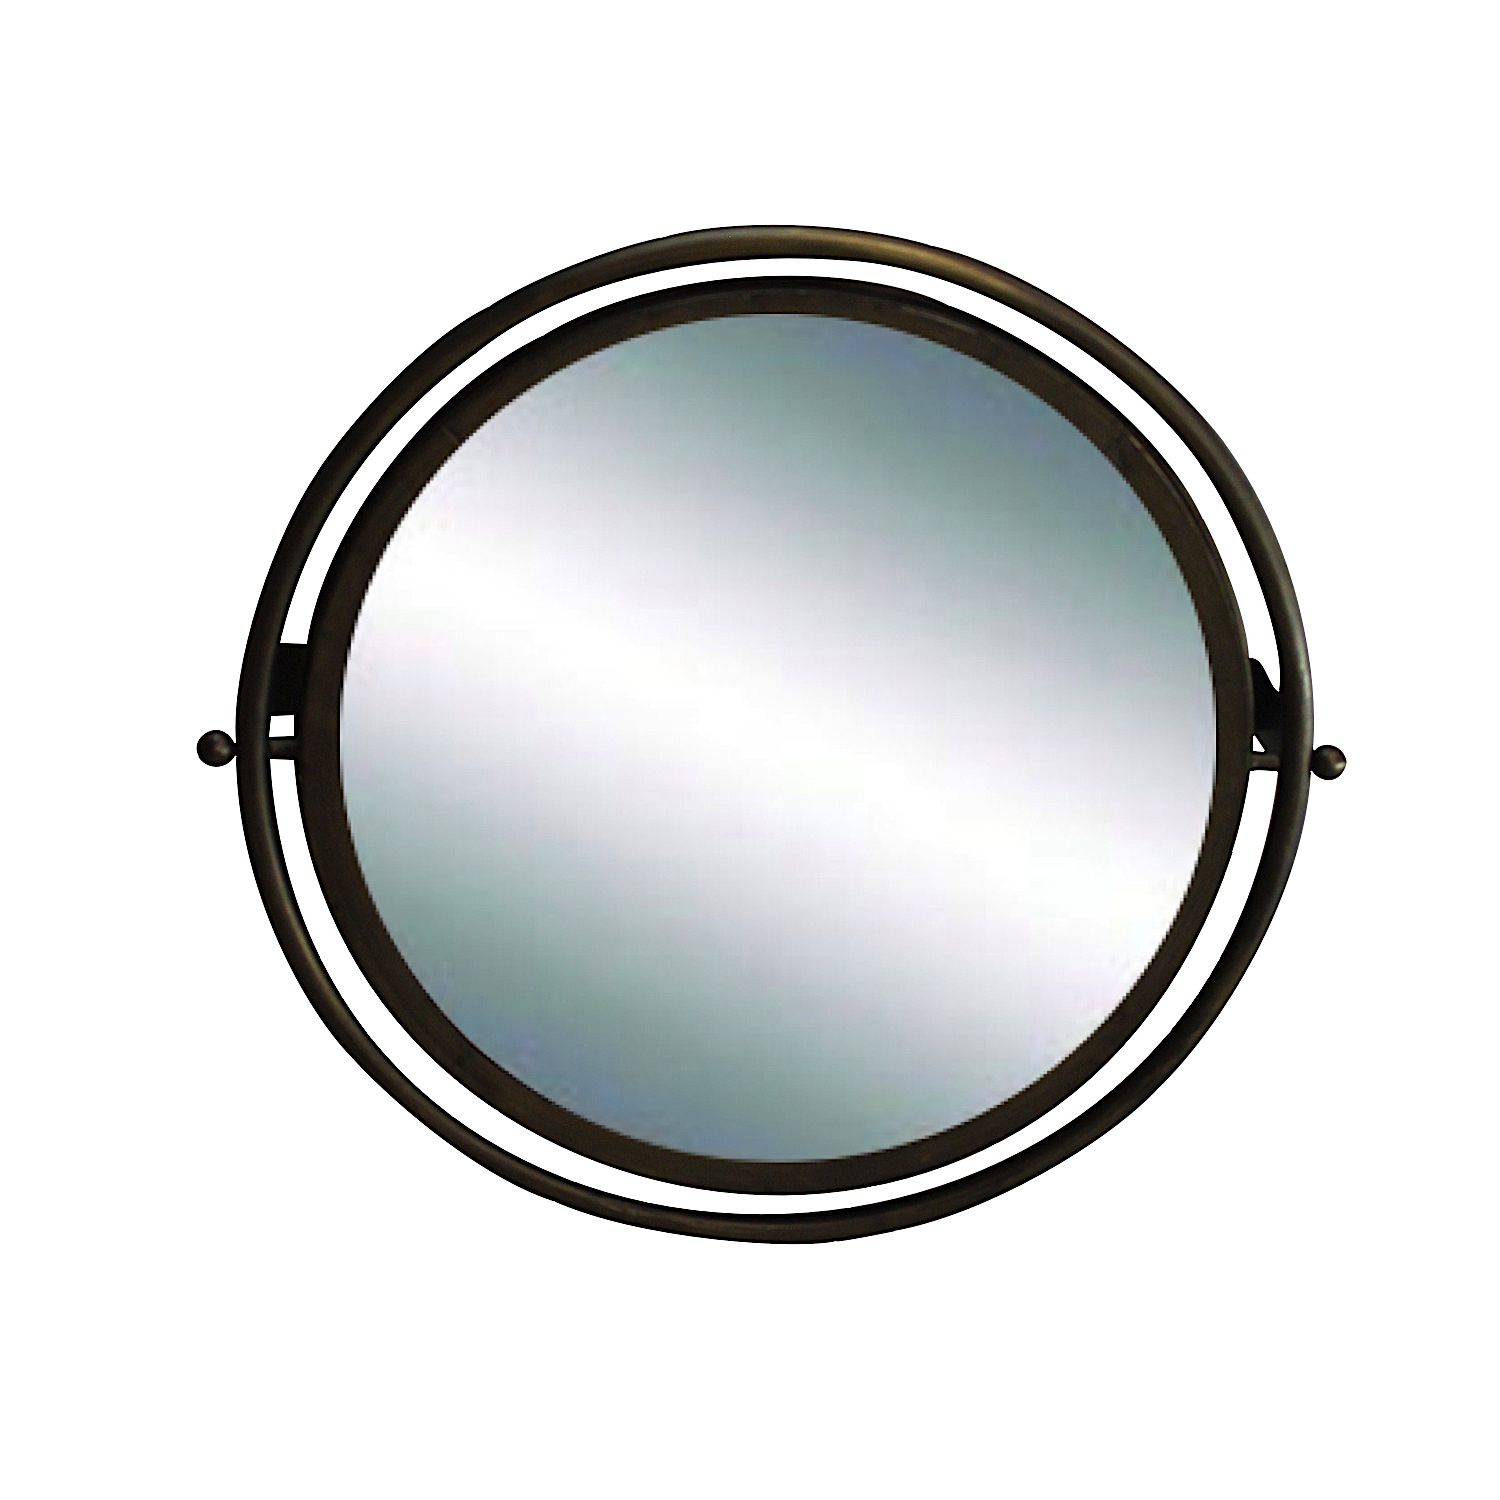 Circular Mirror In Painted Dark Aged Gold Finish Swivel Wall Mounted